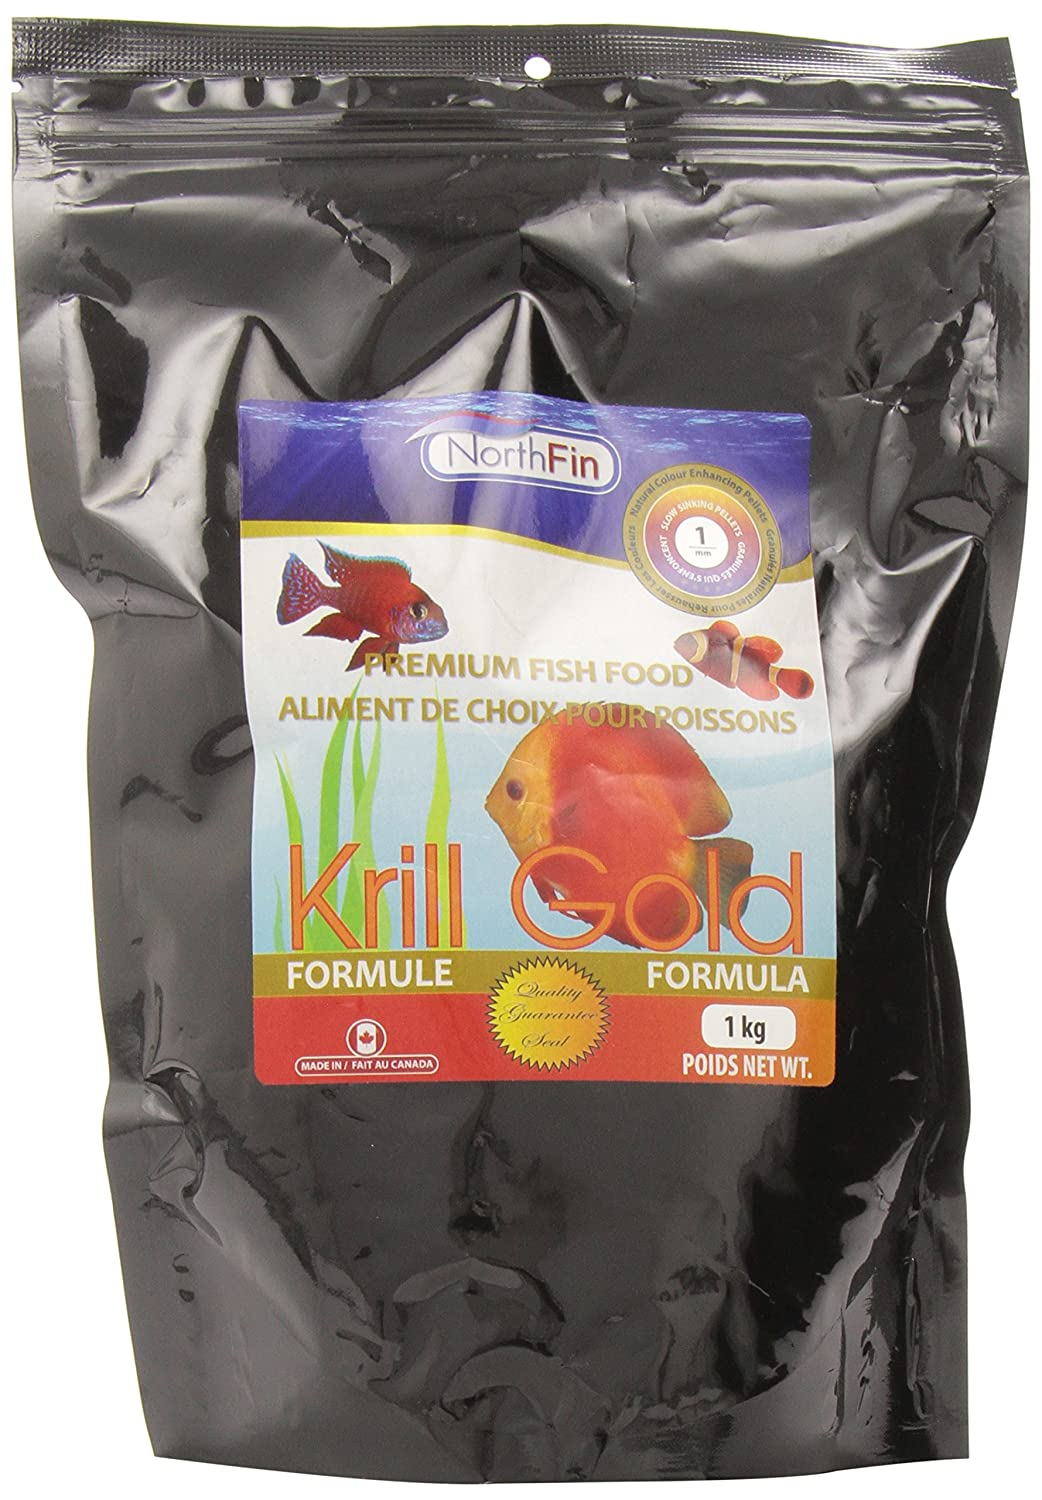 Northfin Food Krill gold 1mm Pellet 1kg Package